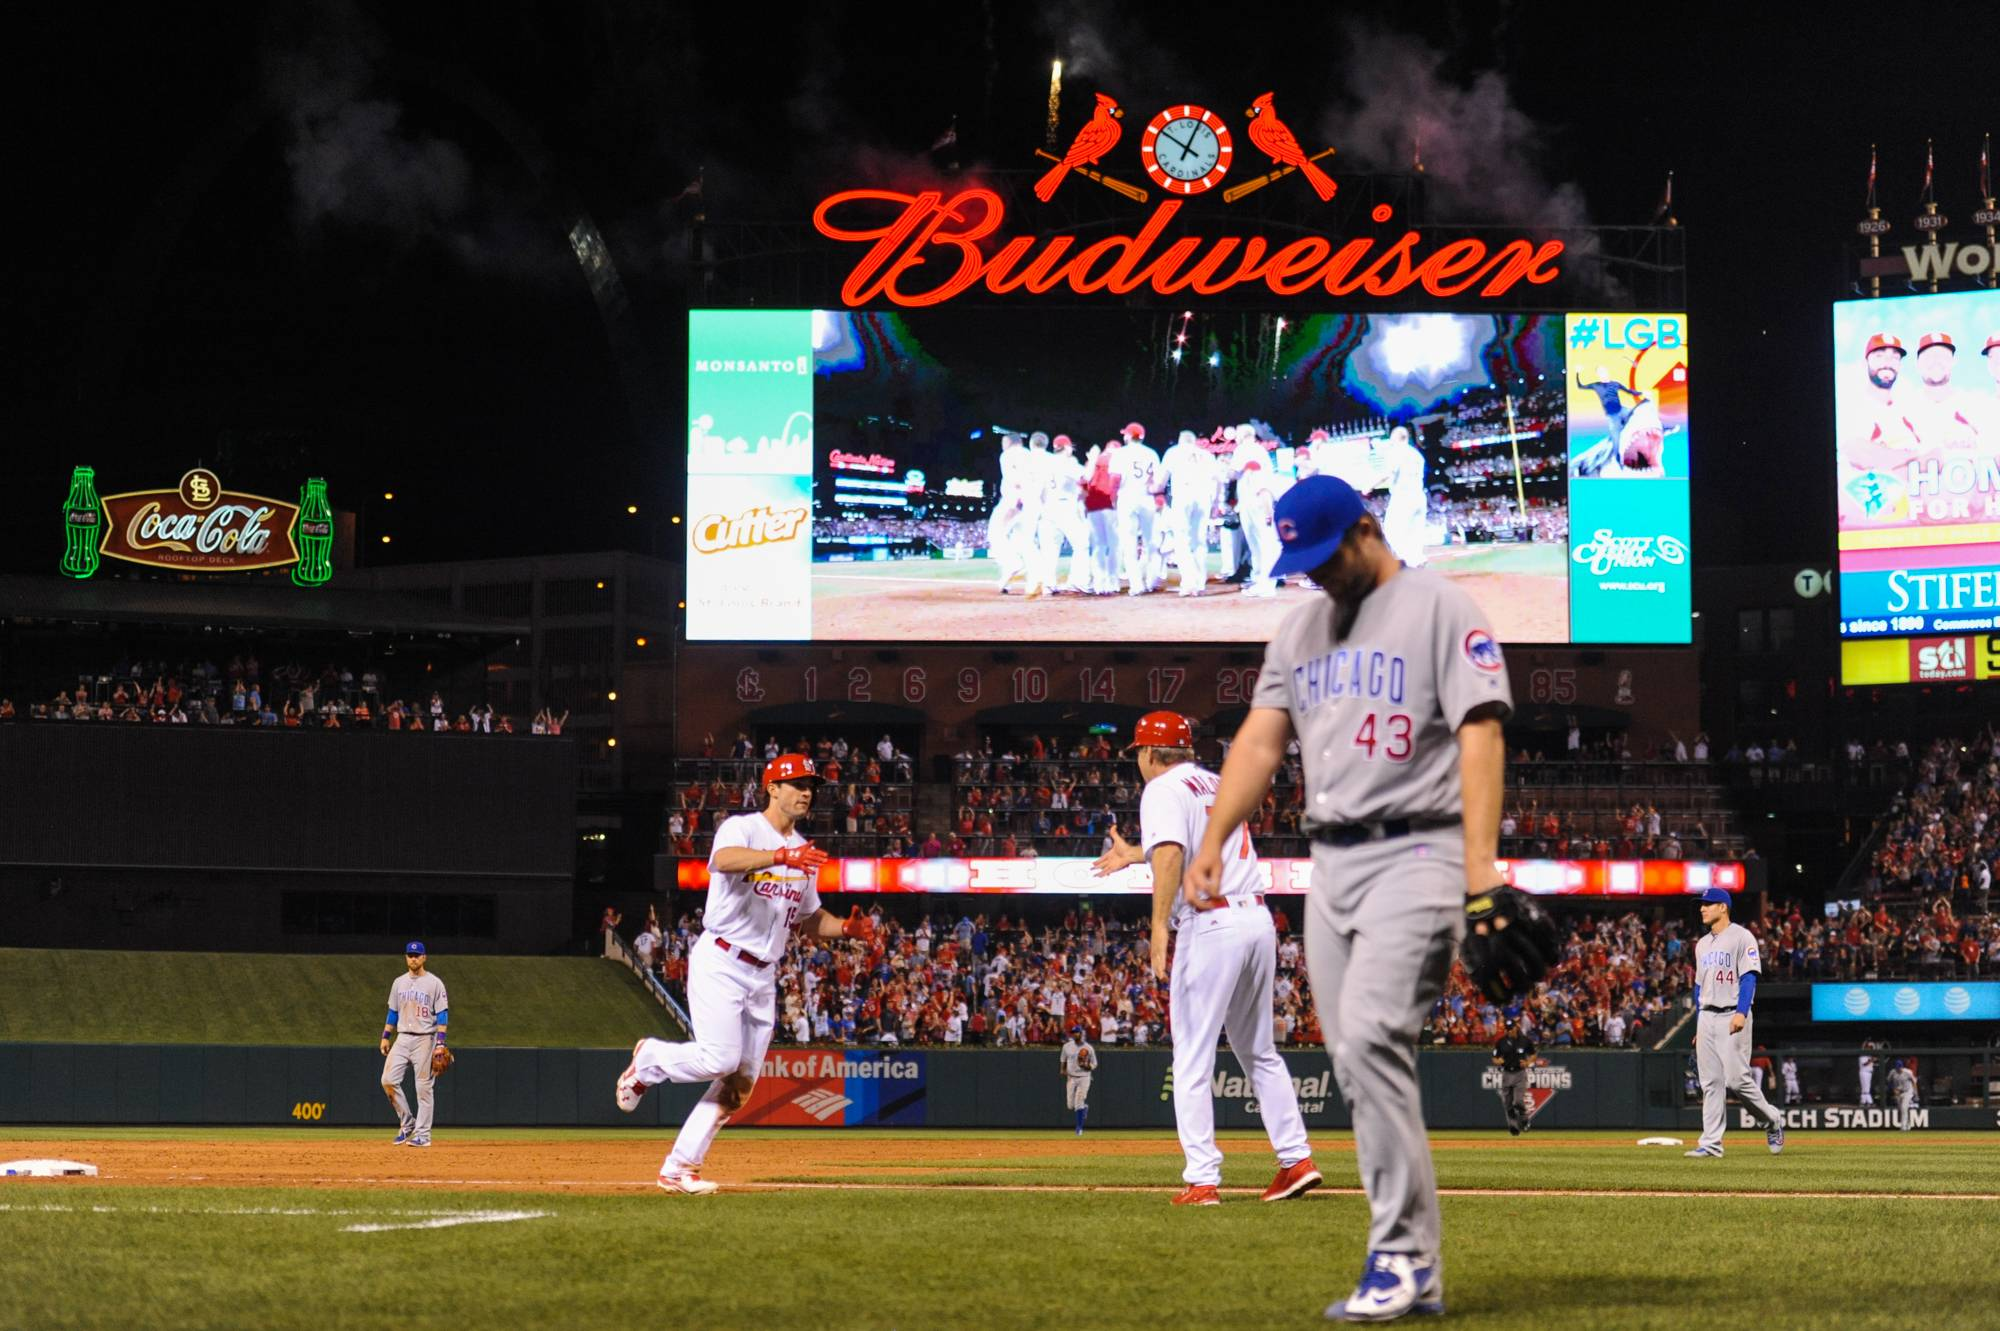 St. Louis Cardinals' Randal Grichuk (15) rounds the bases after hitting a walk-off home run in the ninth inning of a baseball game against the Chicago Cubs on Monday, May 23, 2016, in St. Louis. The Cardinals defeated the Cubs 4-3. (AP Photo/Michael Thomas)